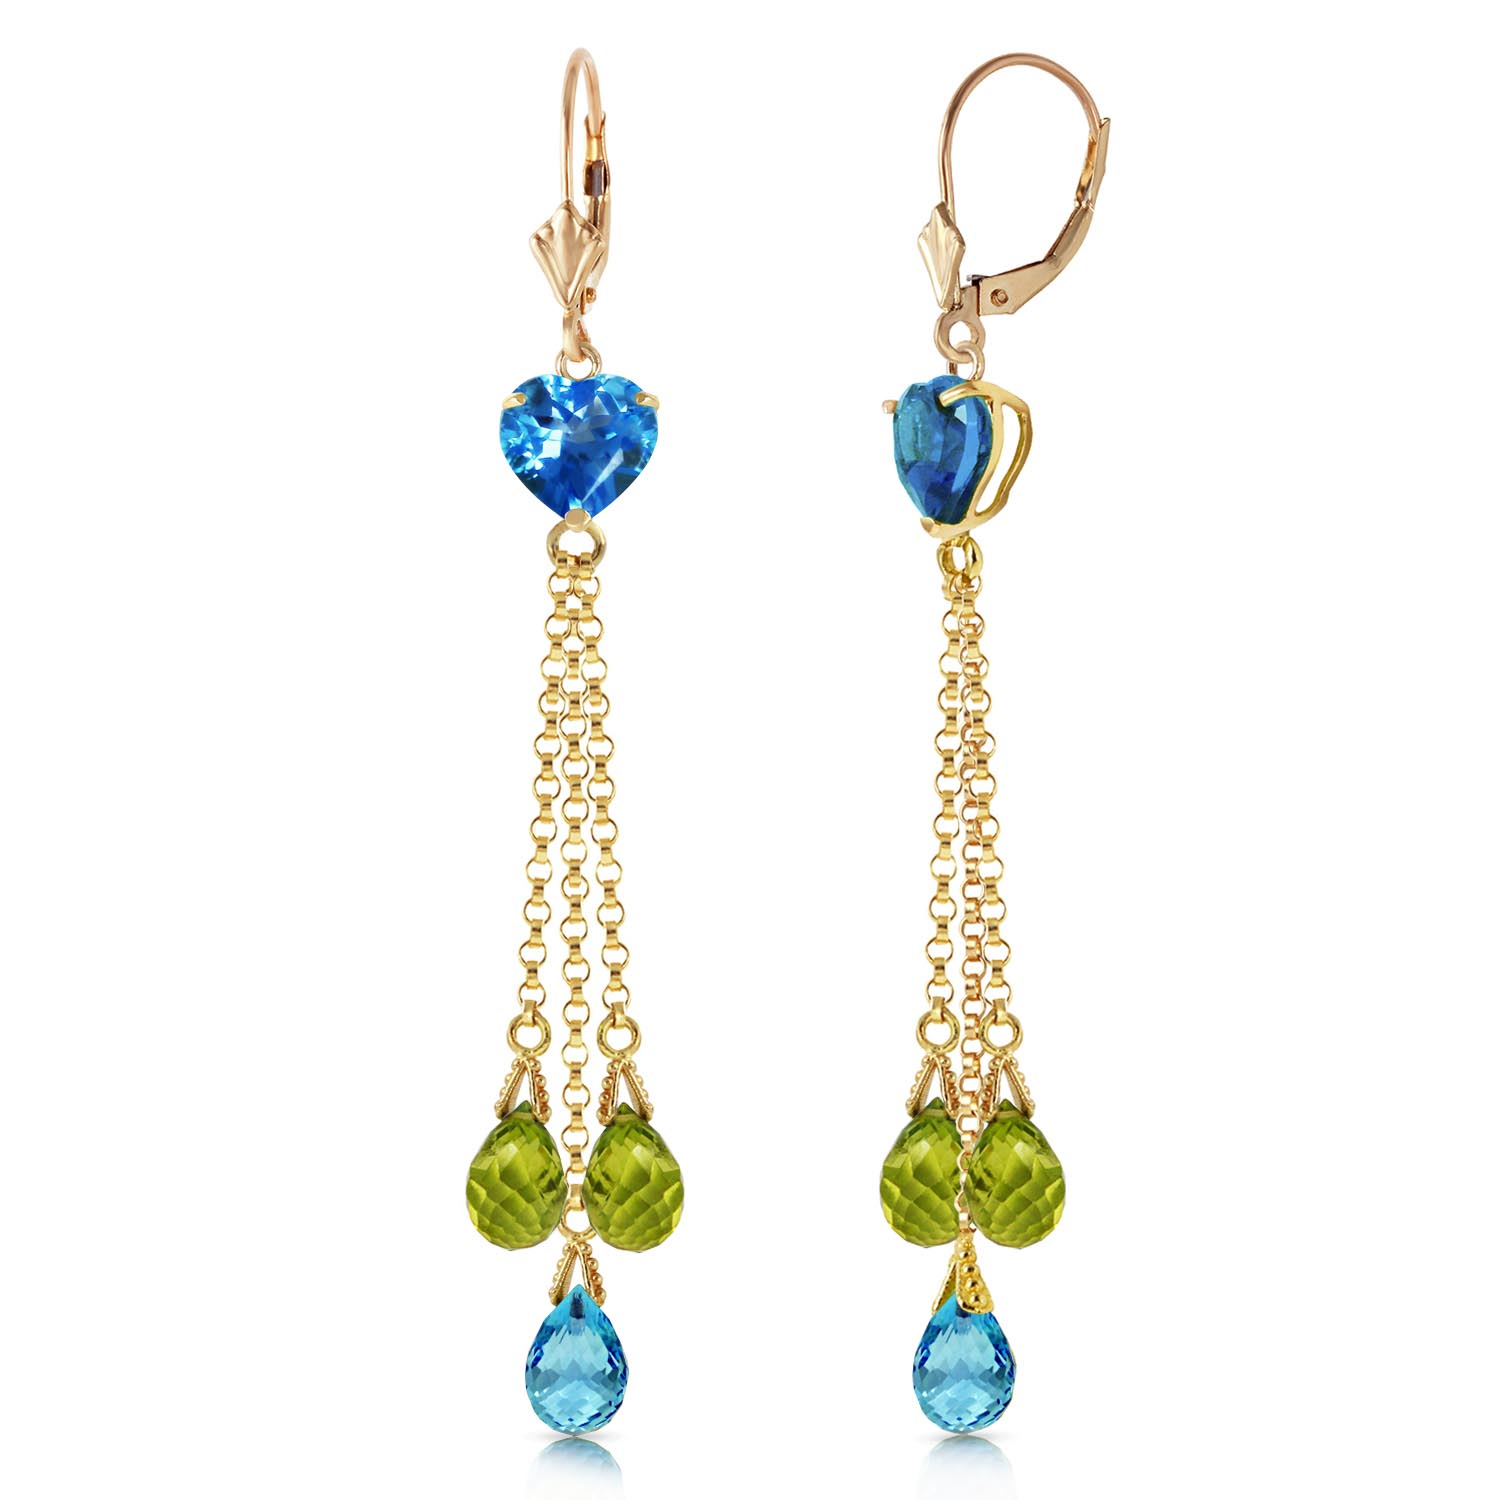 Blue Topaz and Peridot Vestige Drop Earrings 9.5ctw in 9ct Gold